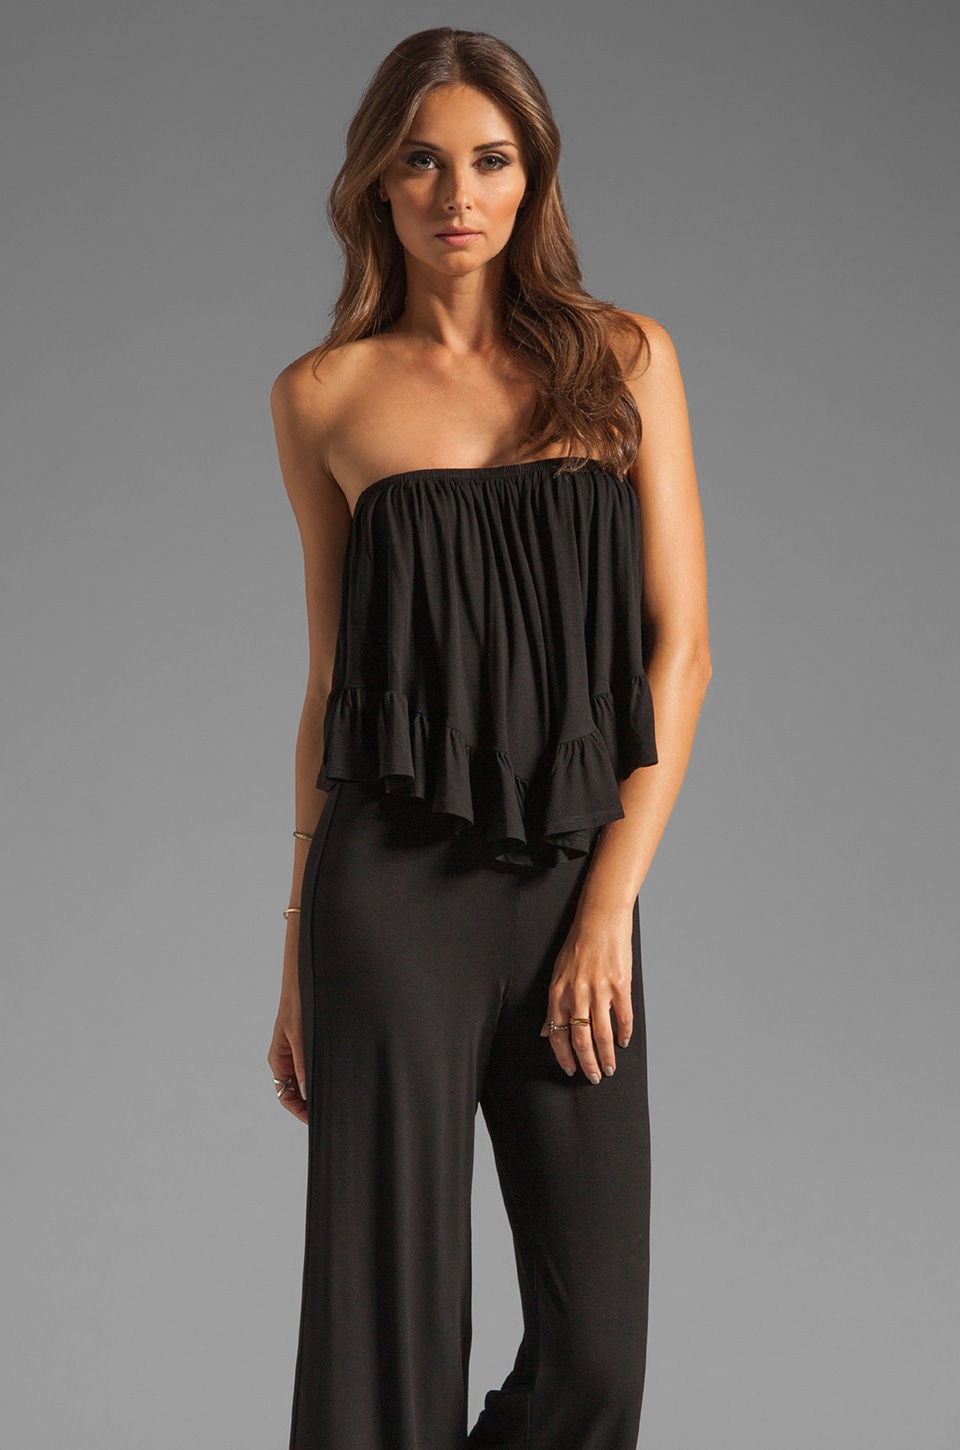 James & Joy Haley Jumpsuit in Black